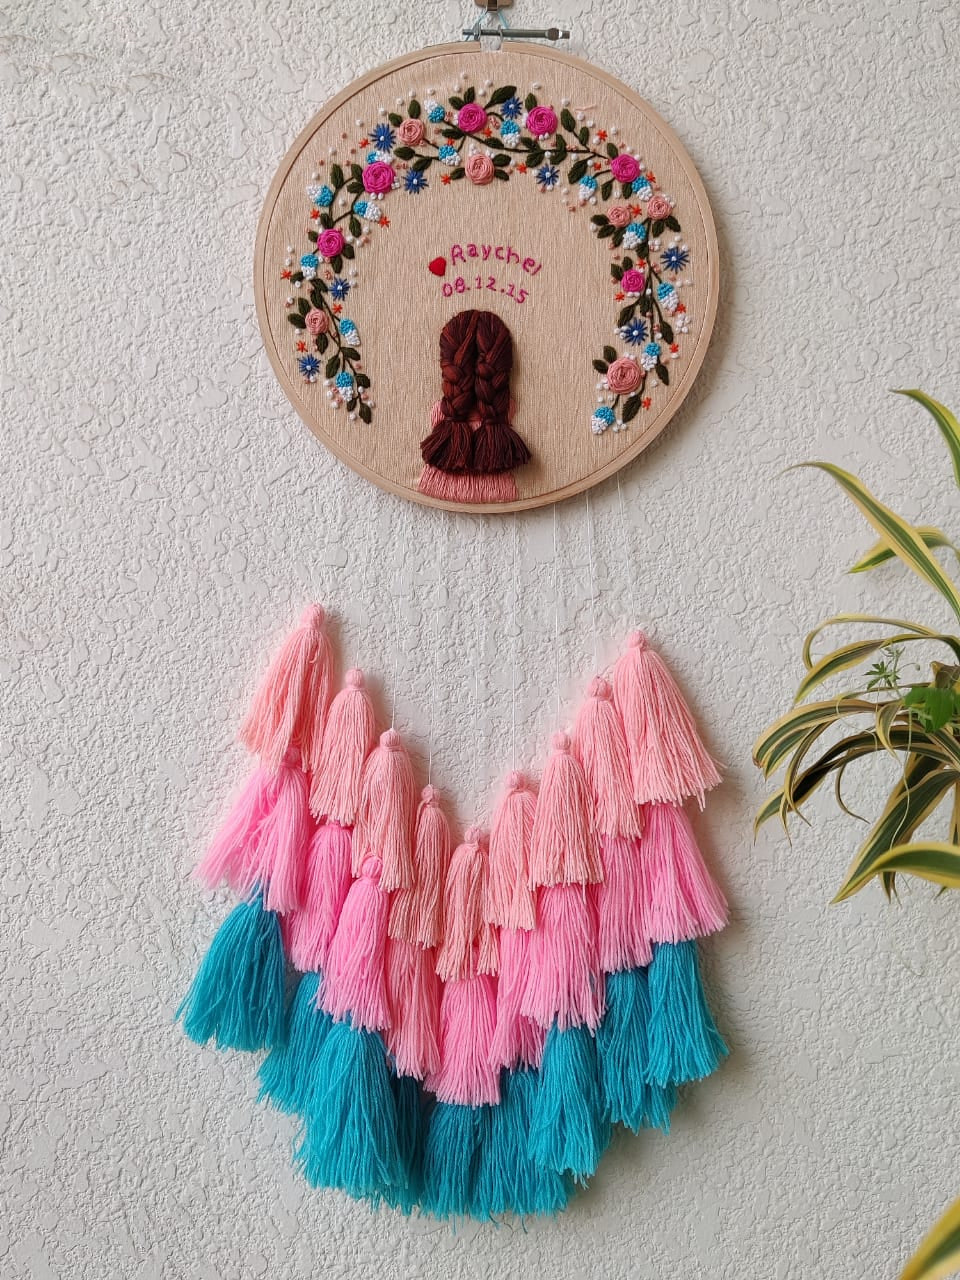 Single Girl Embroidered Hoop with Tassels